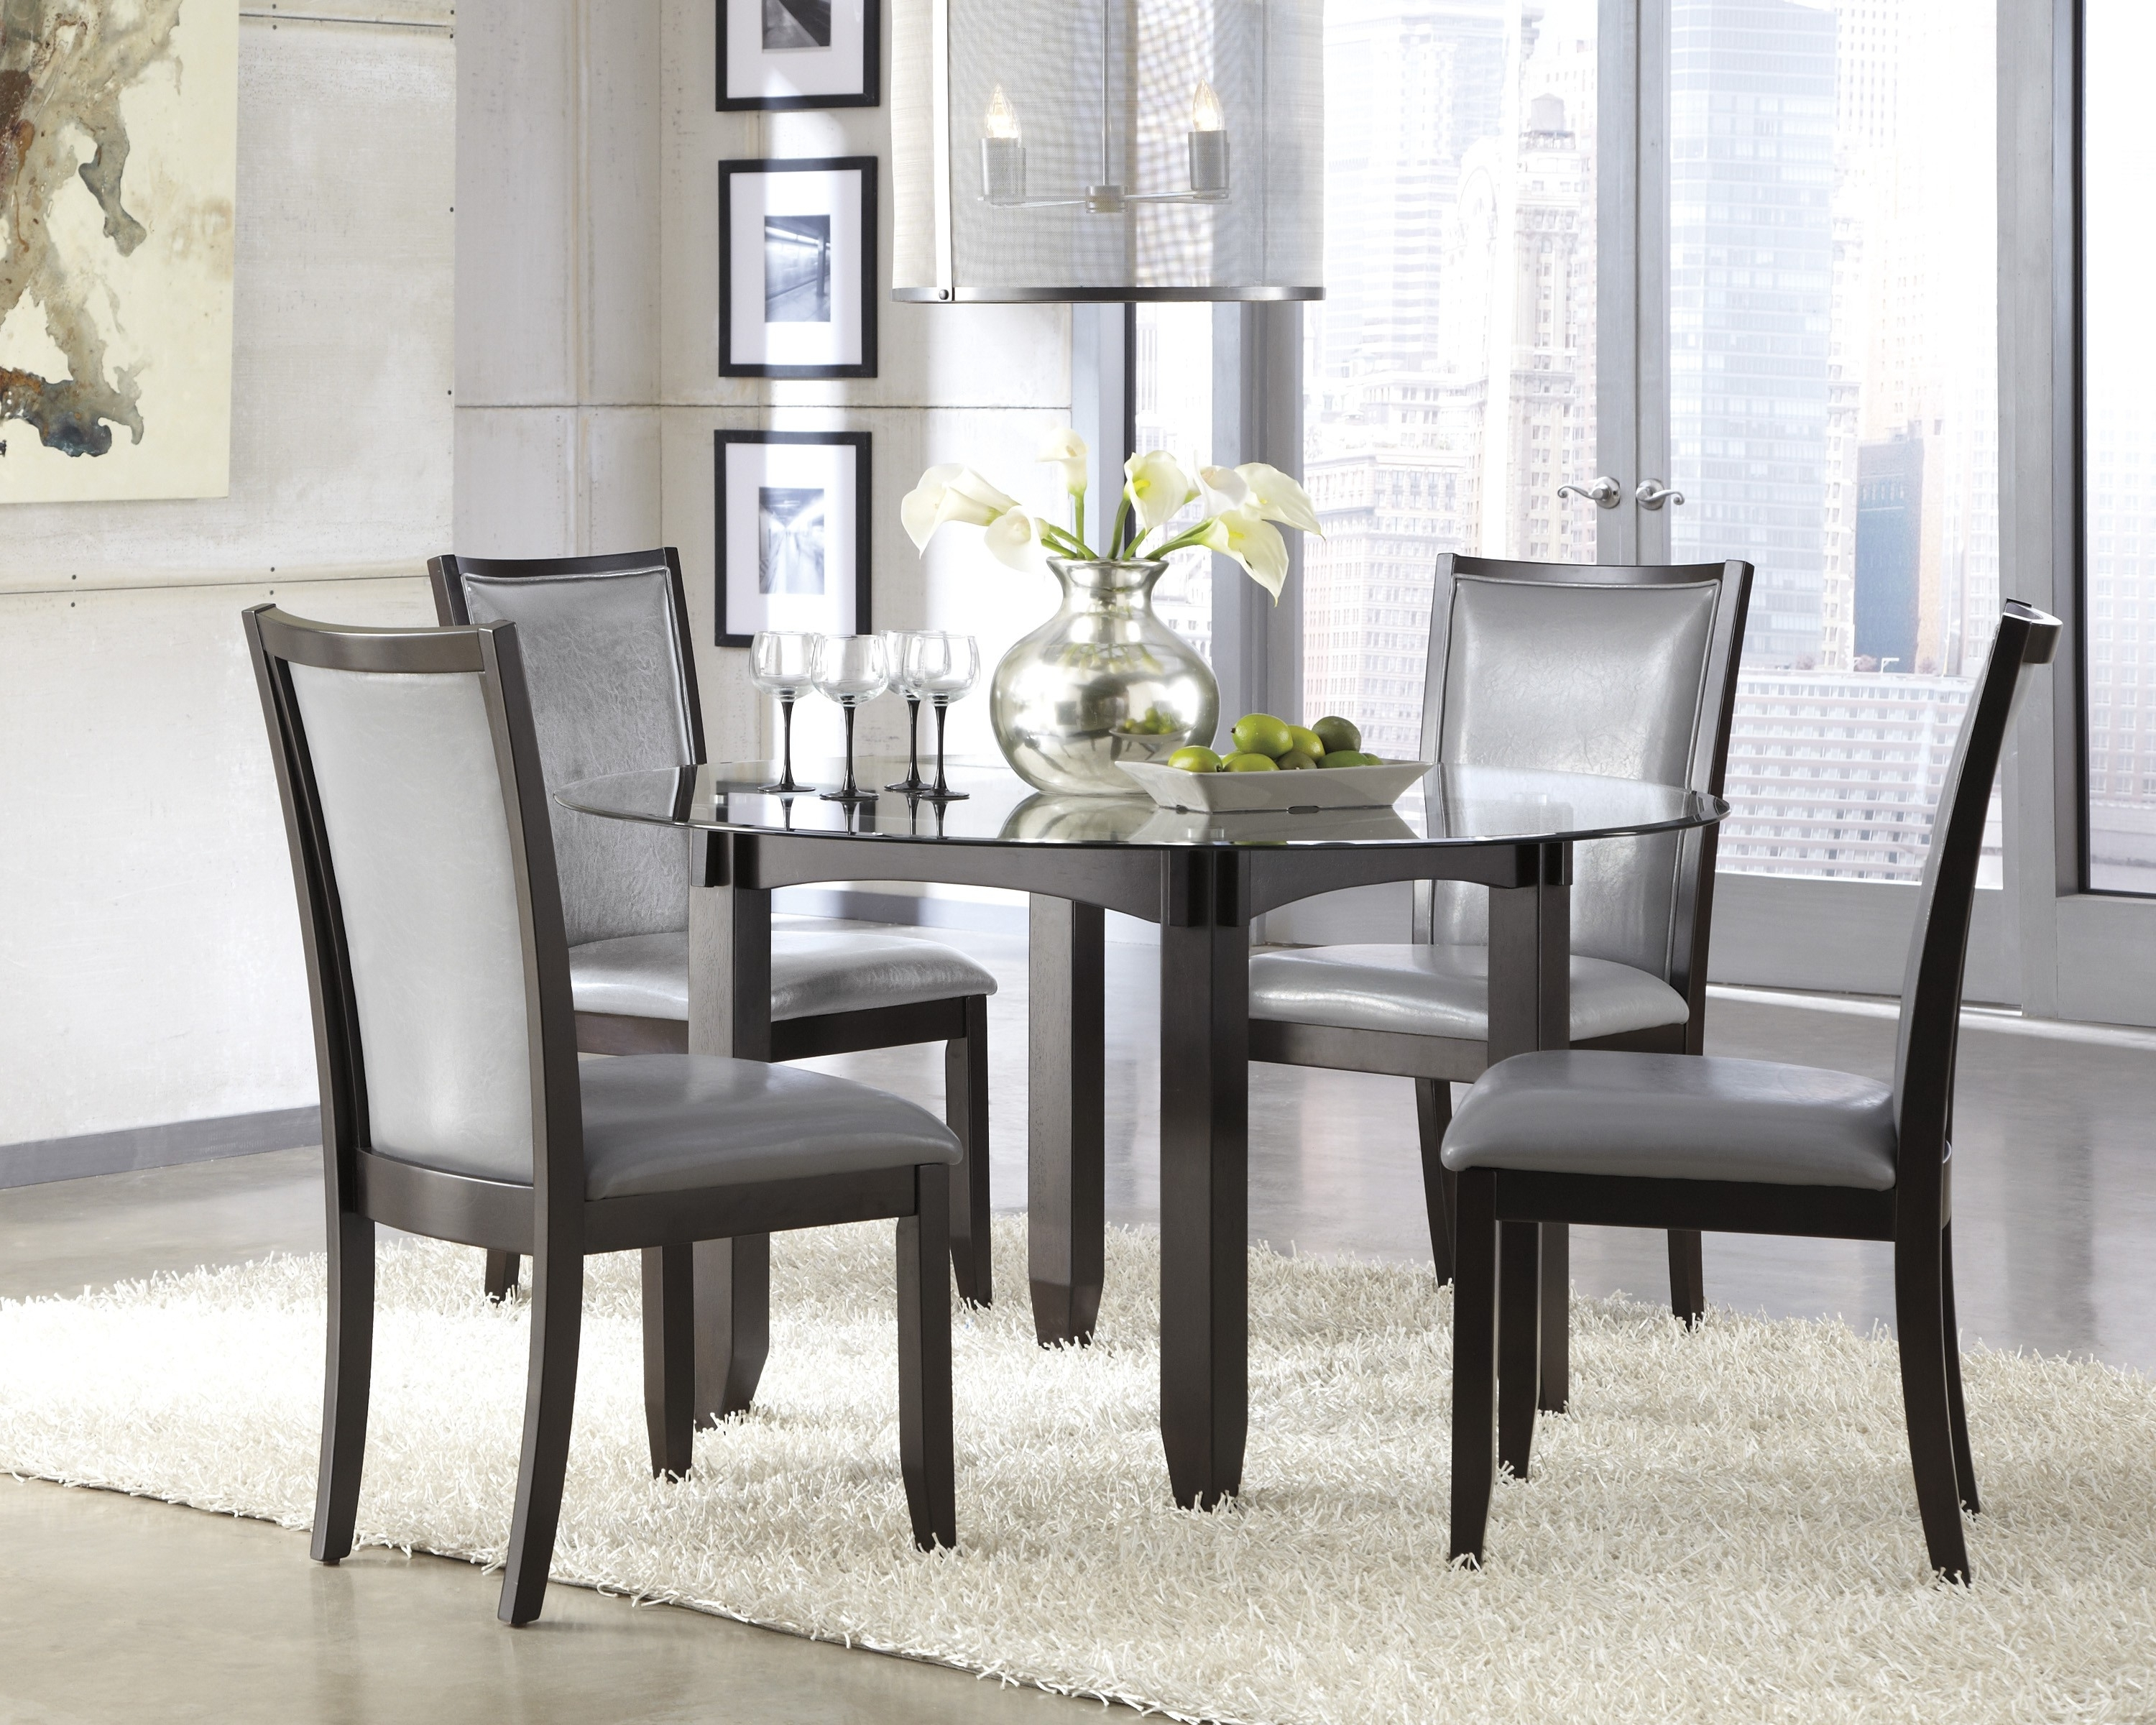 Dining Room Chairs in Popular 5 Round Black Dining Room Table And Chairs Furniture Ideas